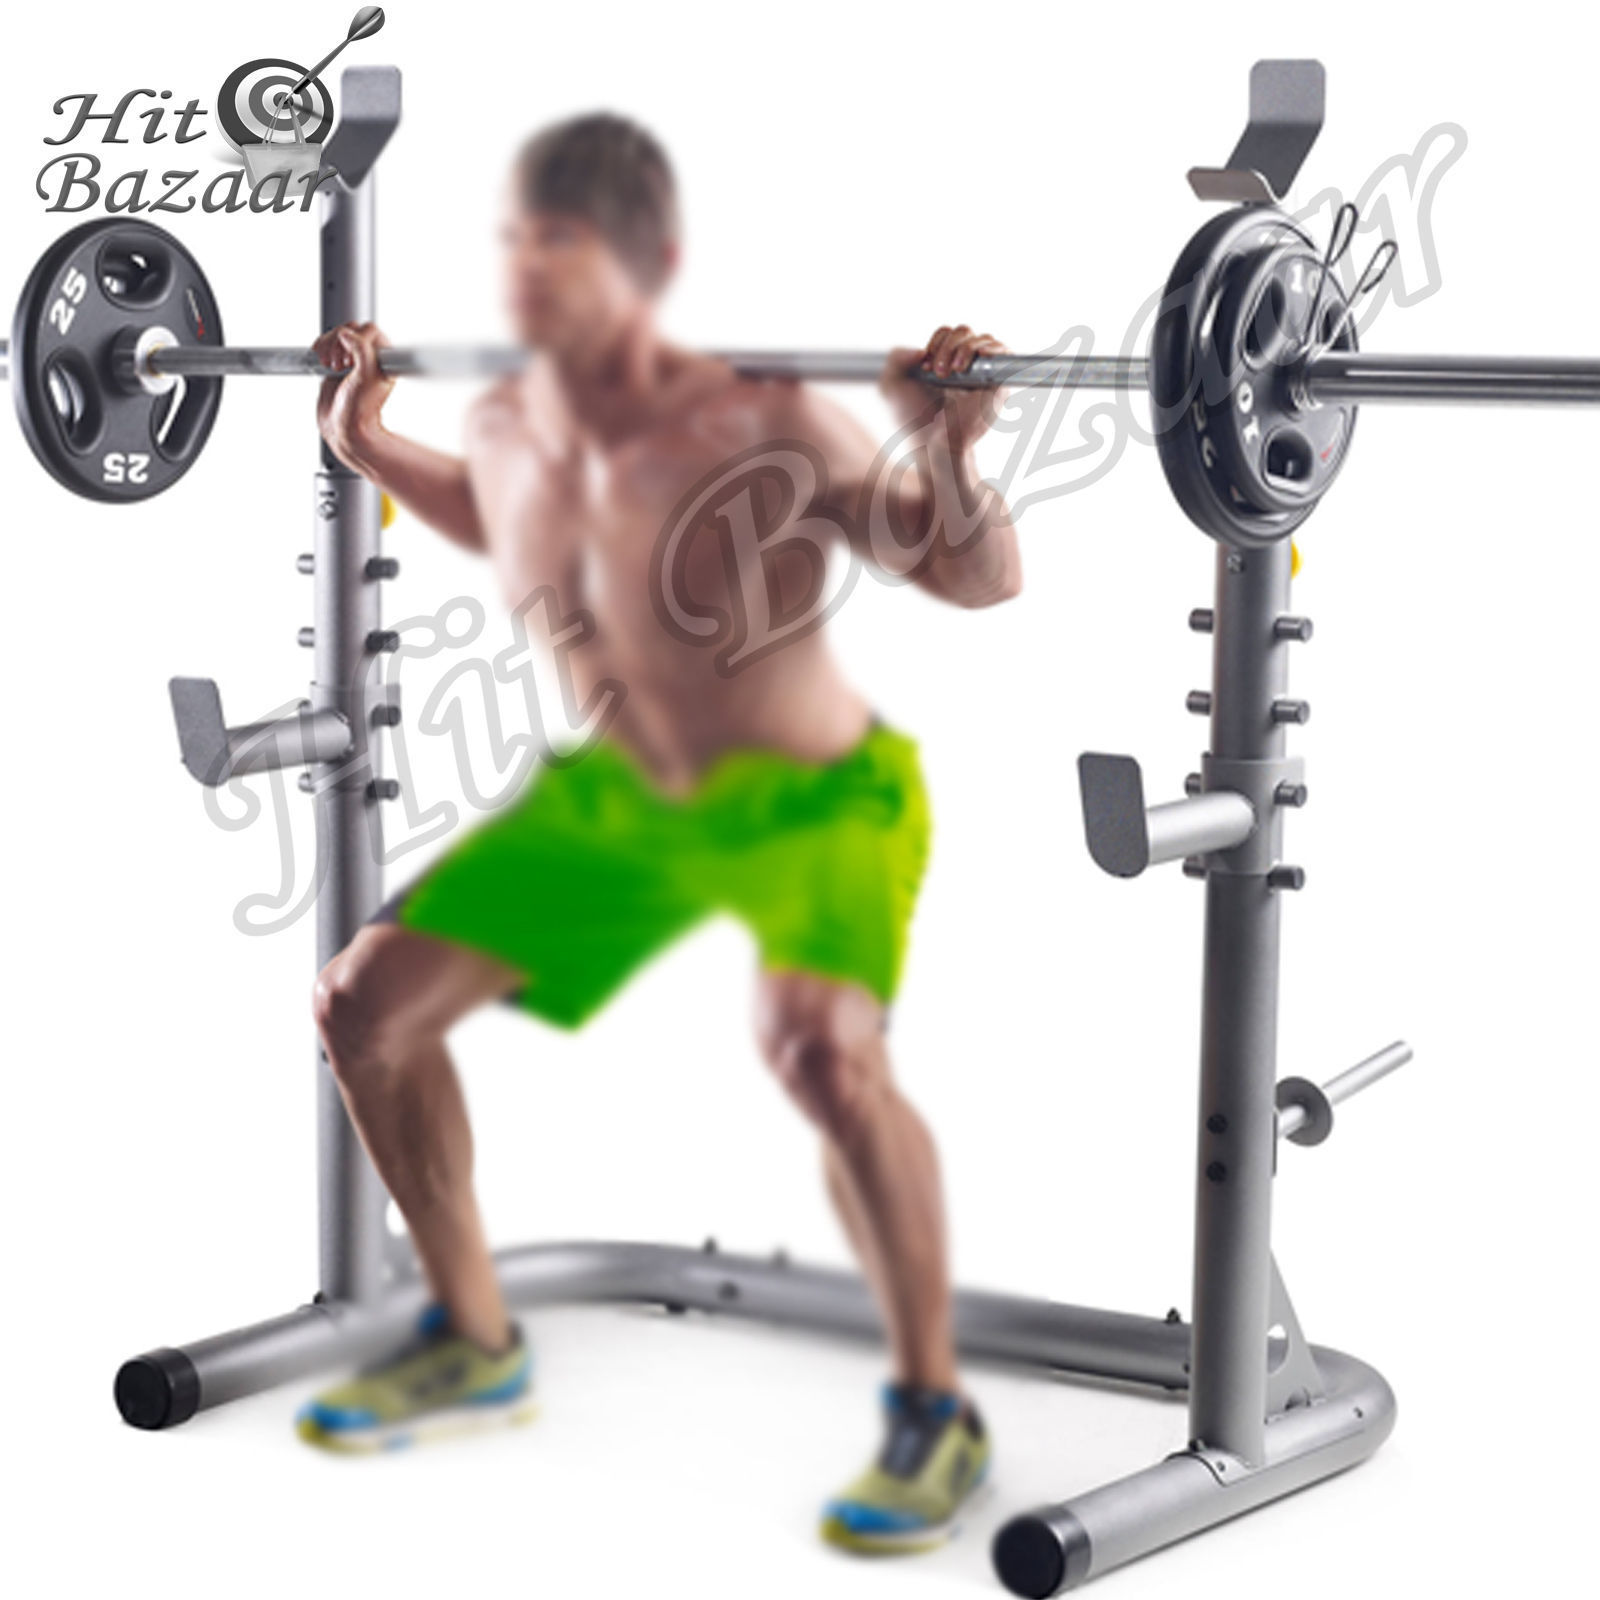 Squat stands power rack weight lifting home gym workout